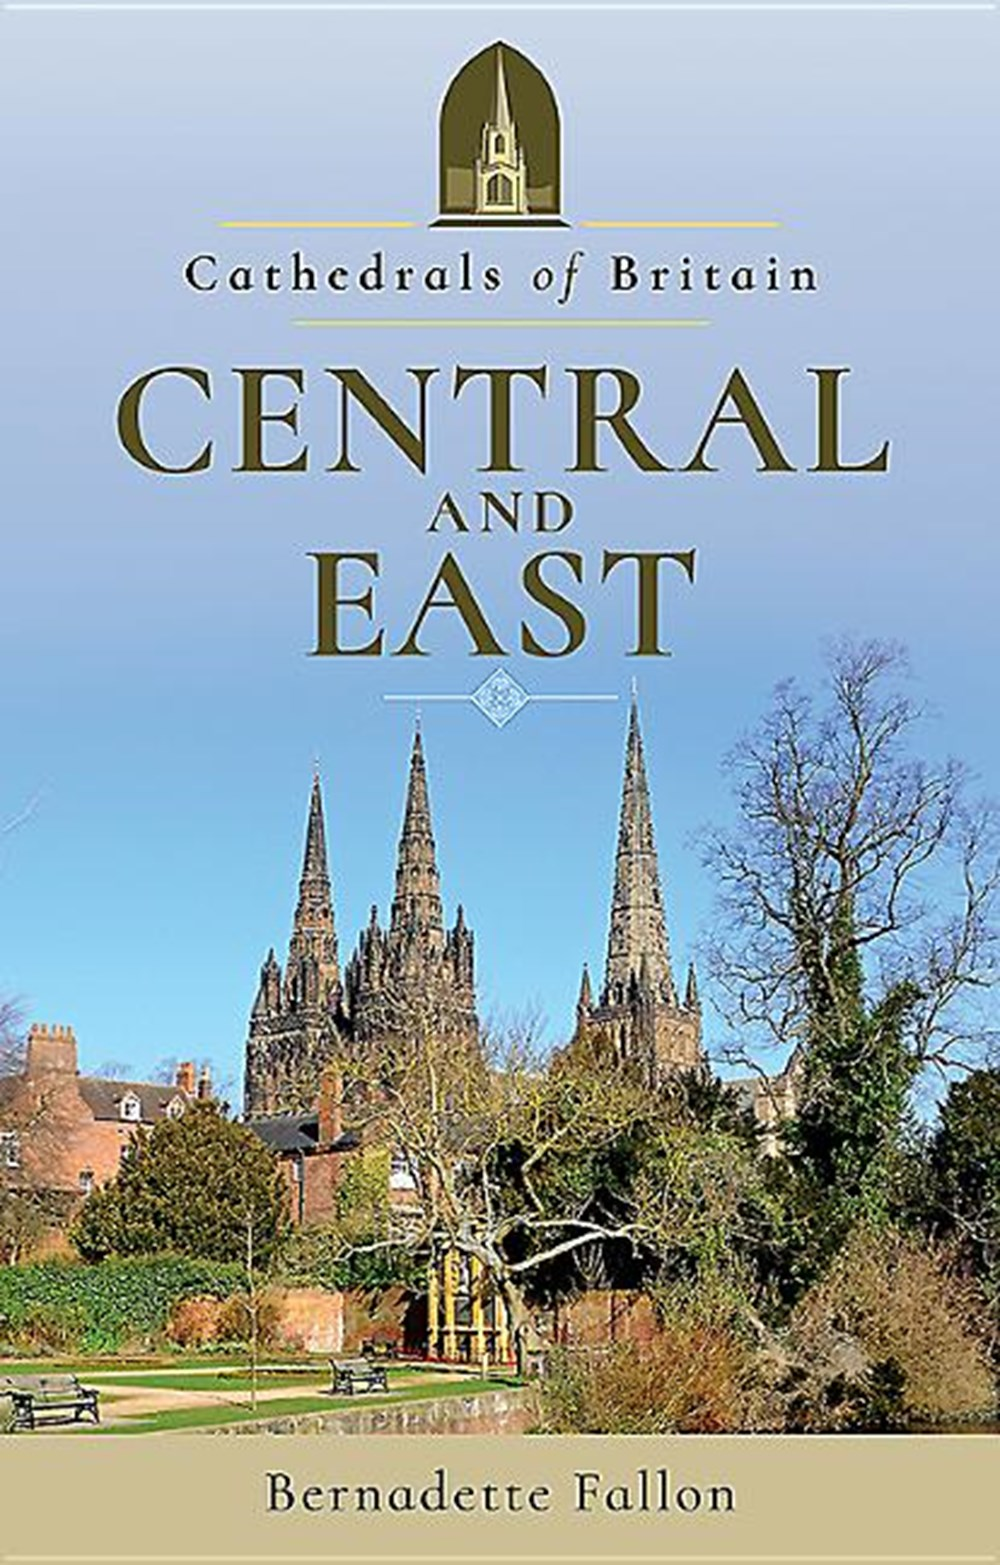 Cathedrals of Britain Central and East